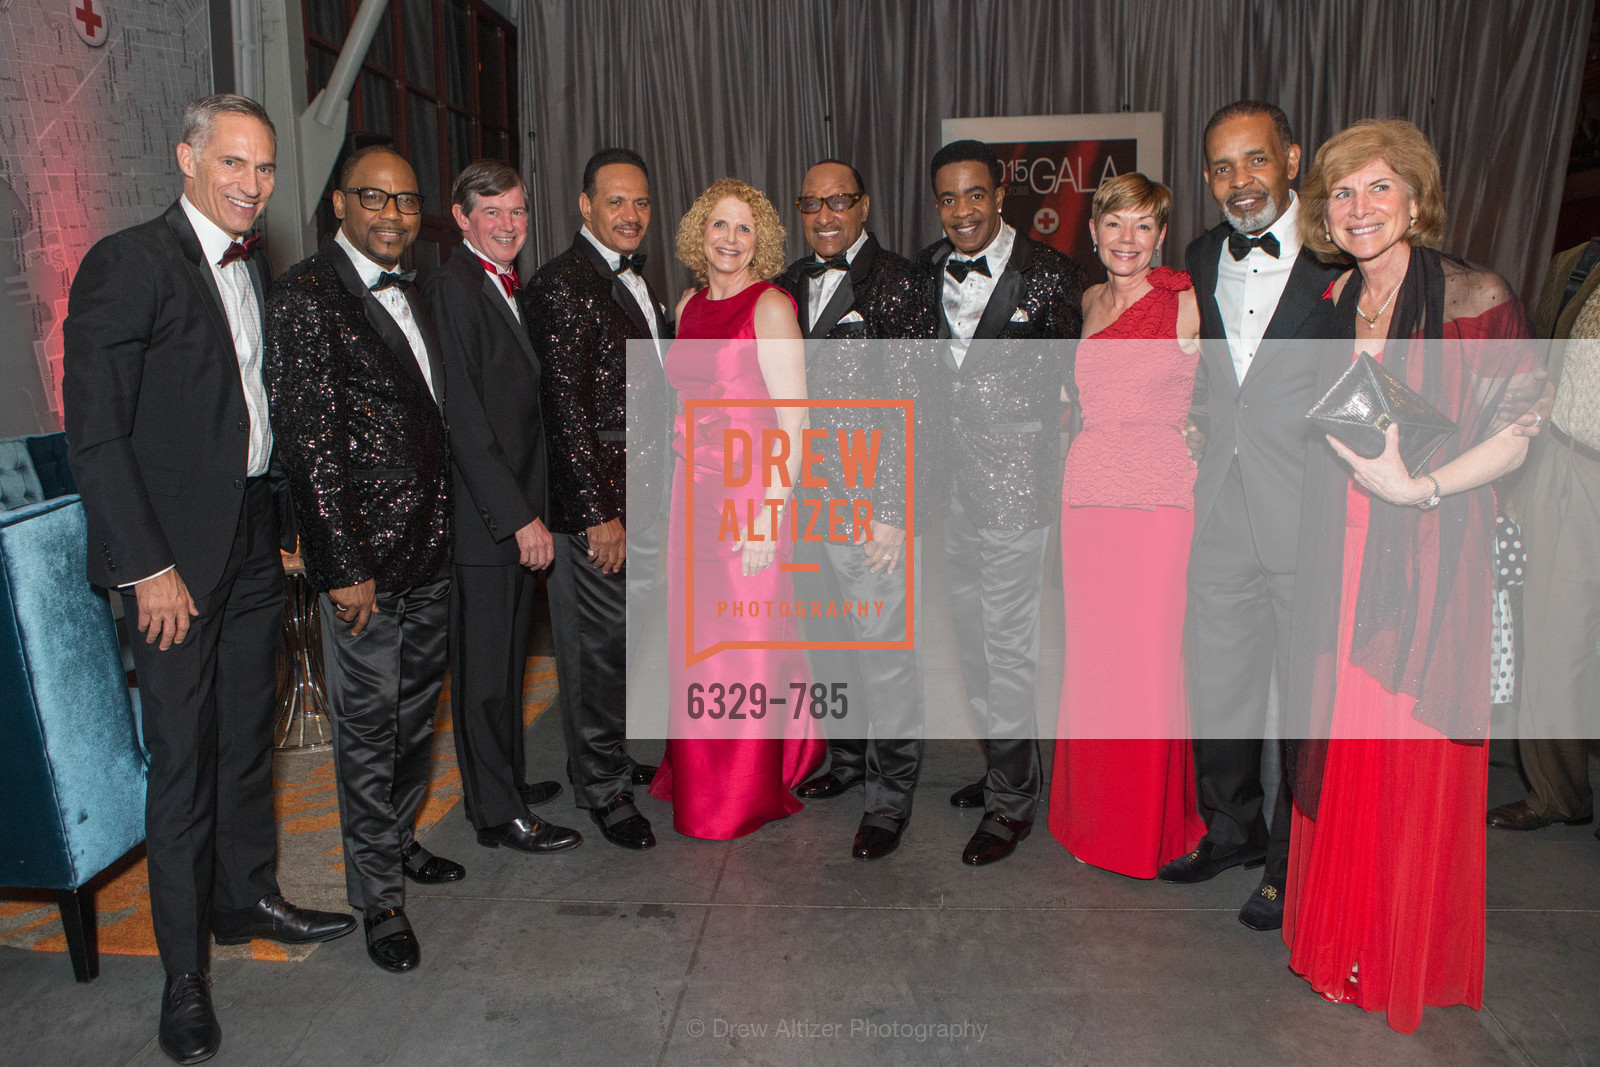 Mark Cloutier, Lawrence Payton, Anthony Earley, Ronnie McNair, Sarah Early, Duke Fakir, Spike Bonhart, Paula Downey, Joe Madison, Gail McGovern, 2015 RED CROSS Gala, US, April 11th, 2015,Drew Altizer, Drew Altizer Photography, full-service agency, private events, San Francisco photographer, photographer california